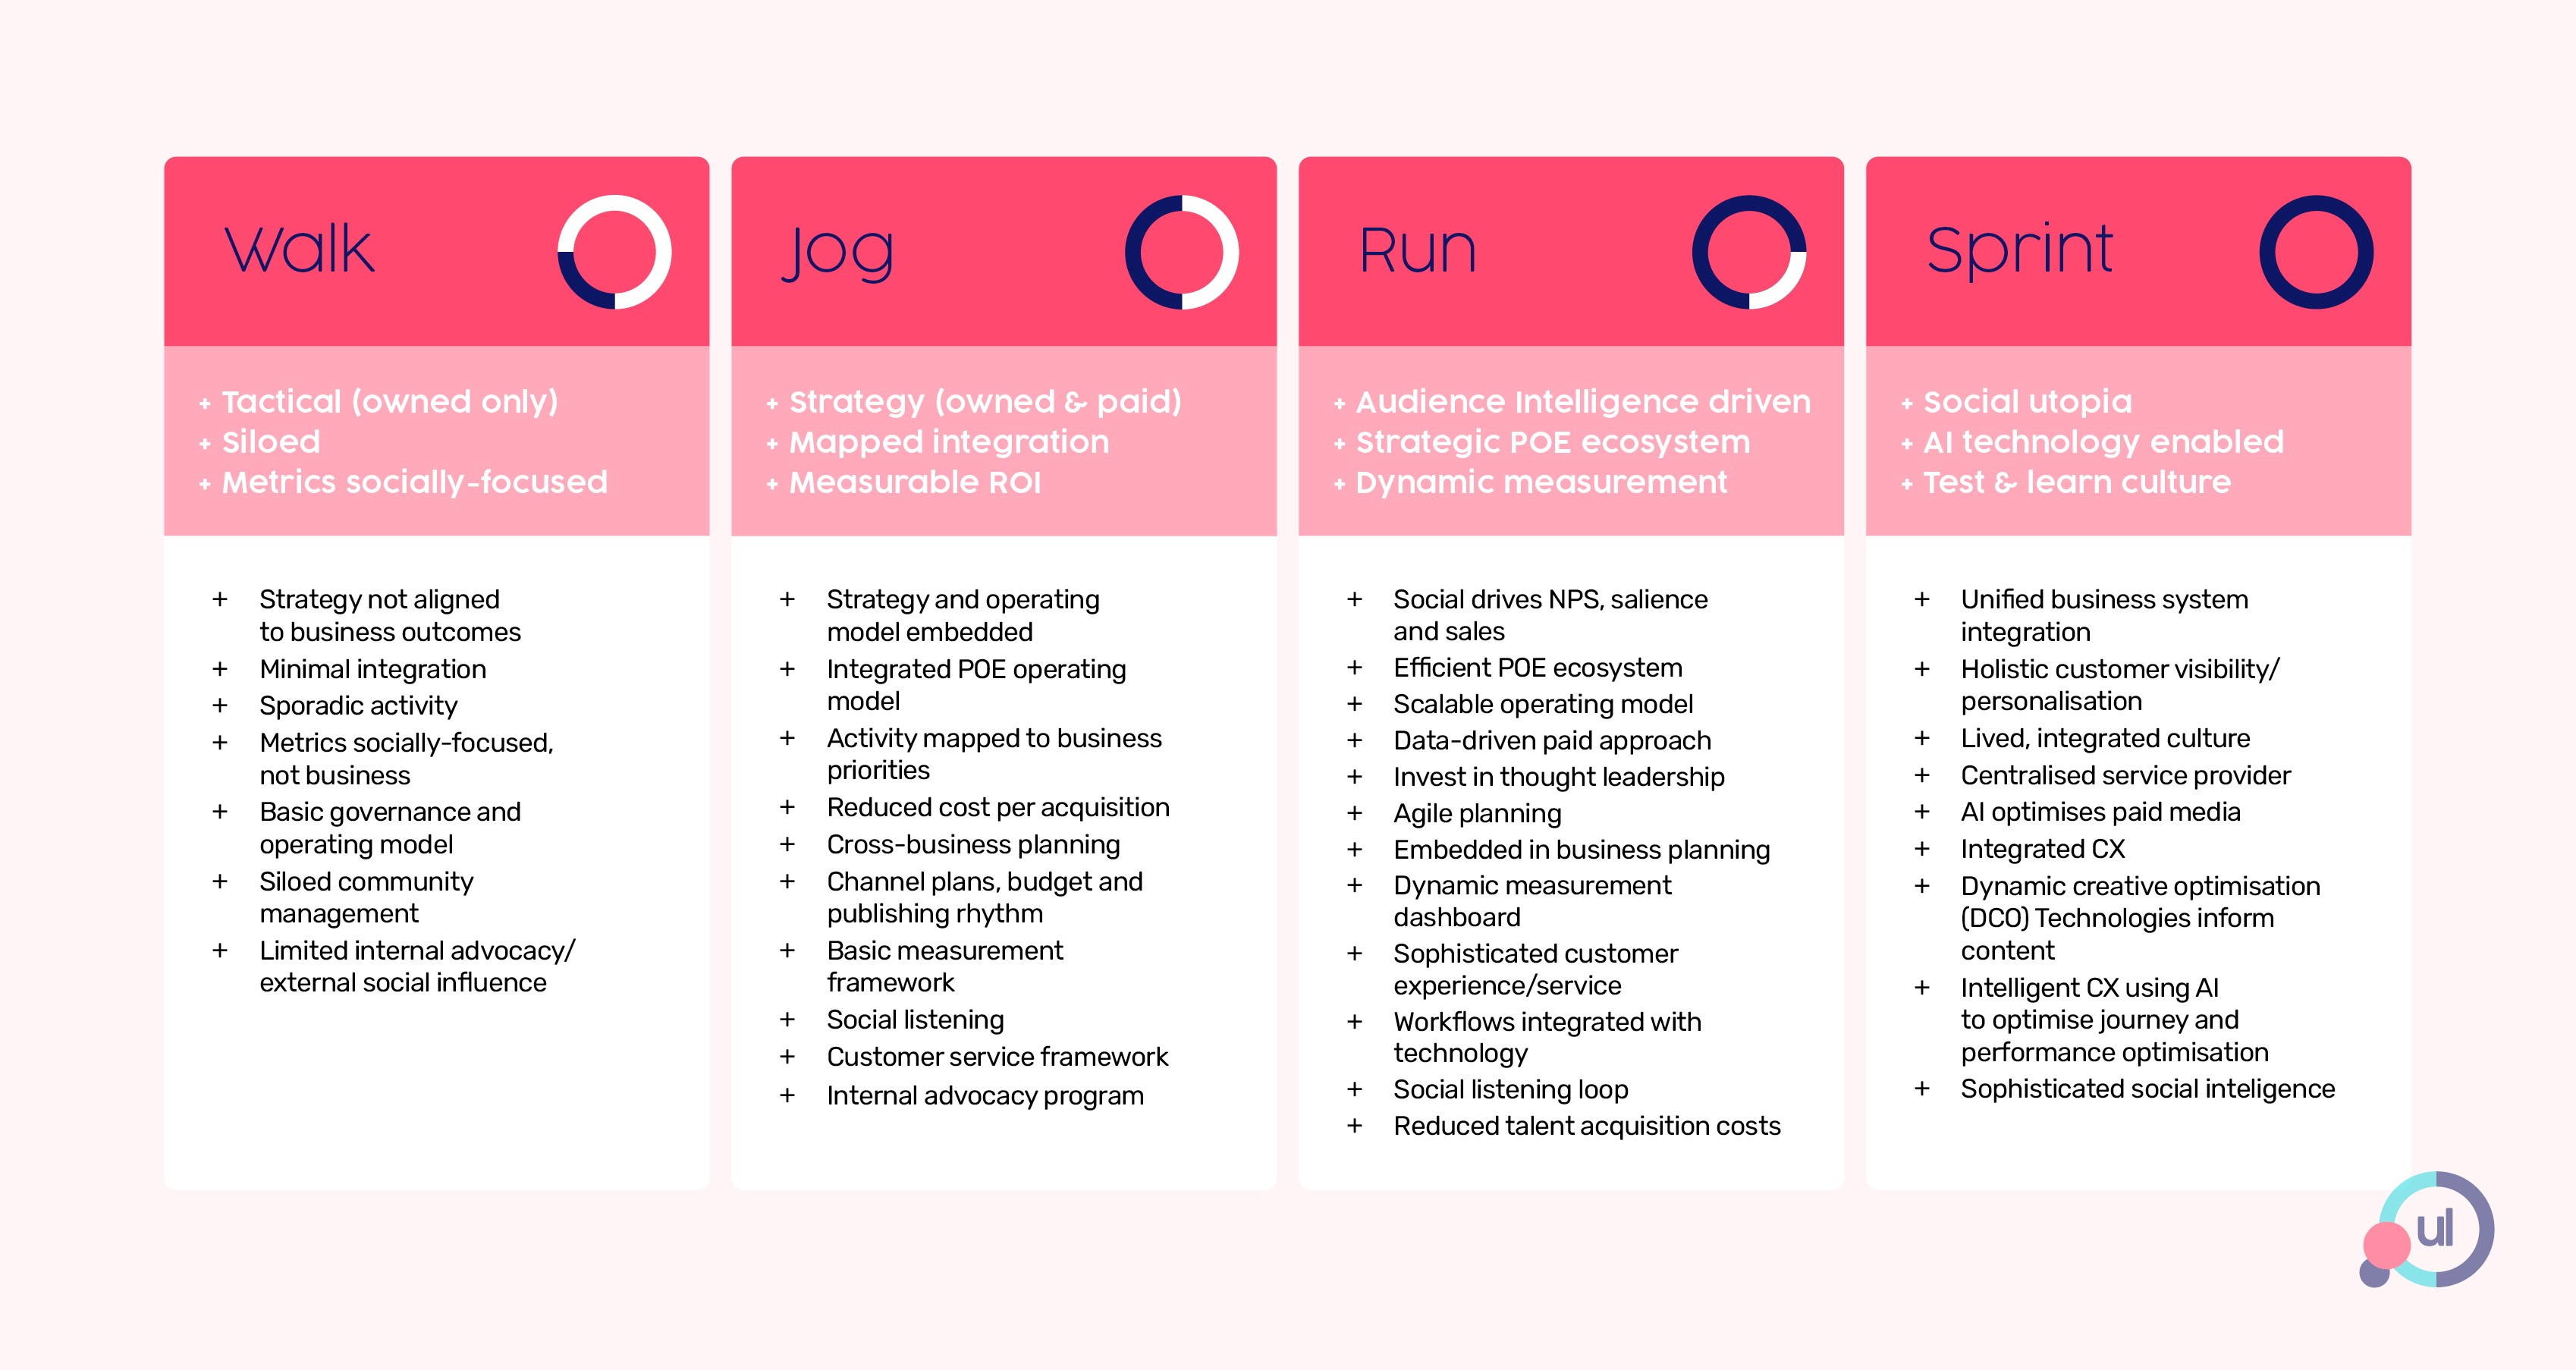 Chart depicting walk, jog, run, sprint—the four phase roadmap to social domination